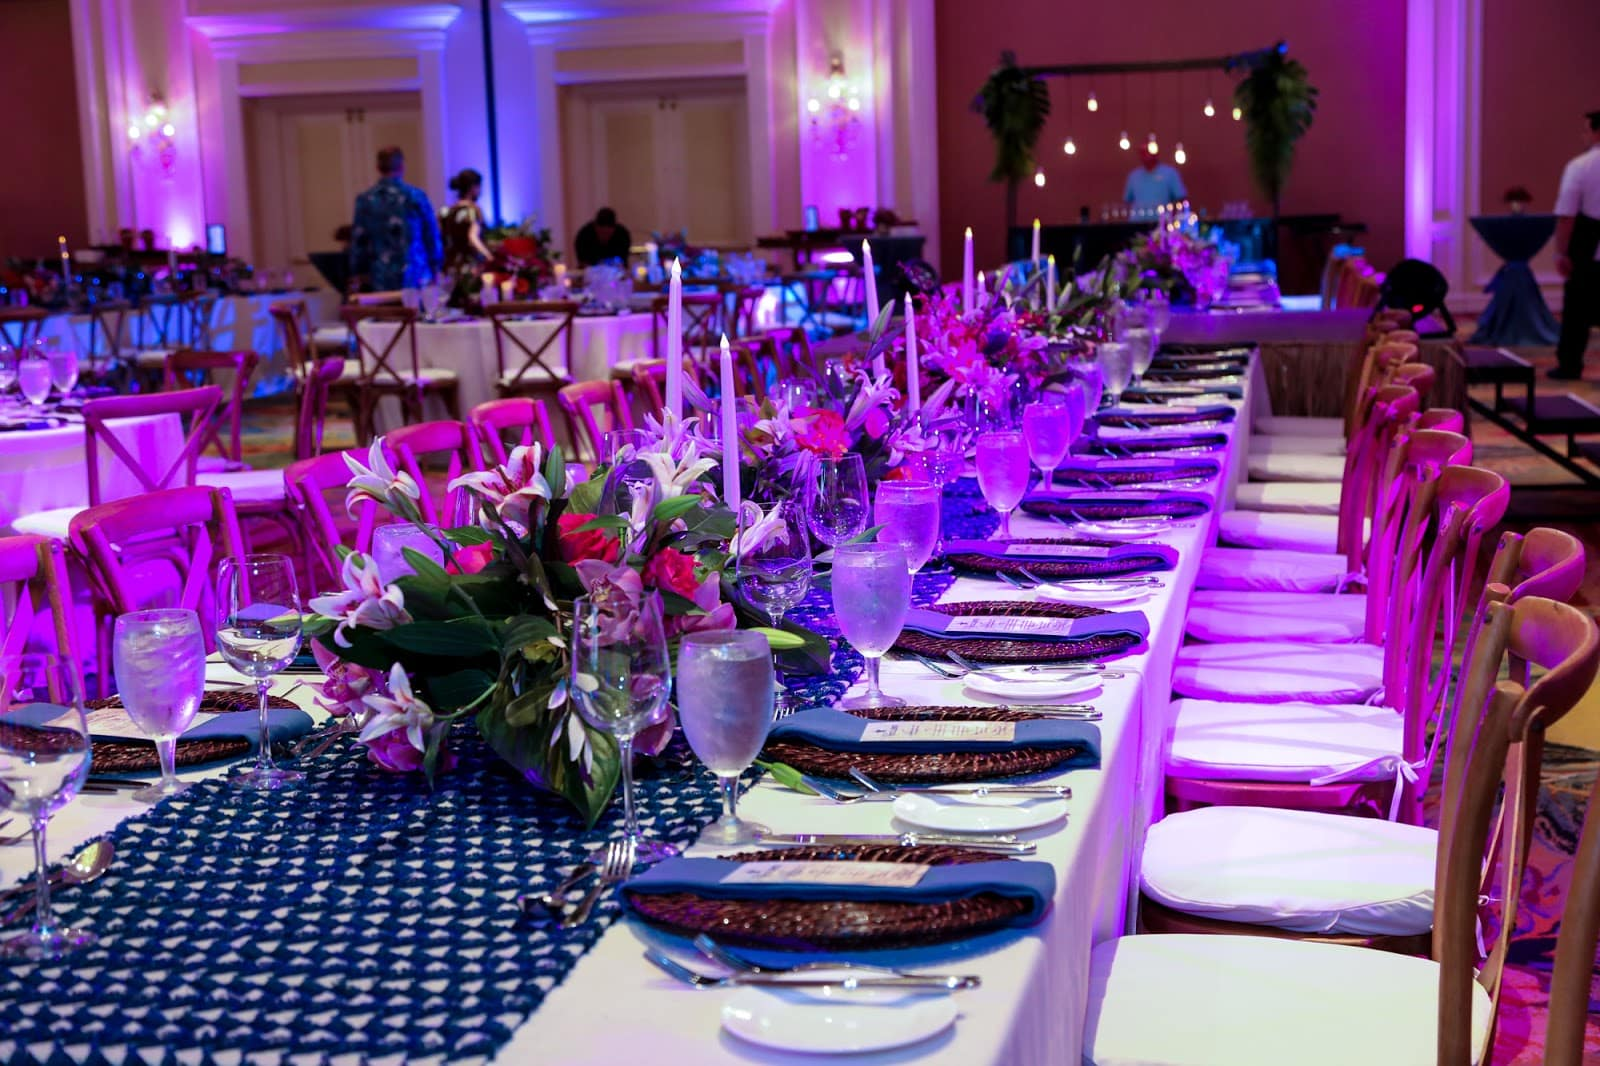 Top 5 Creative Catering Ideas for Your Event